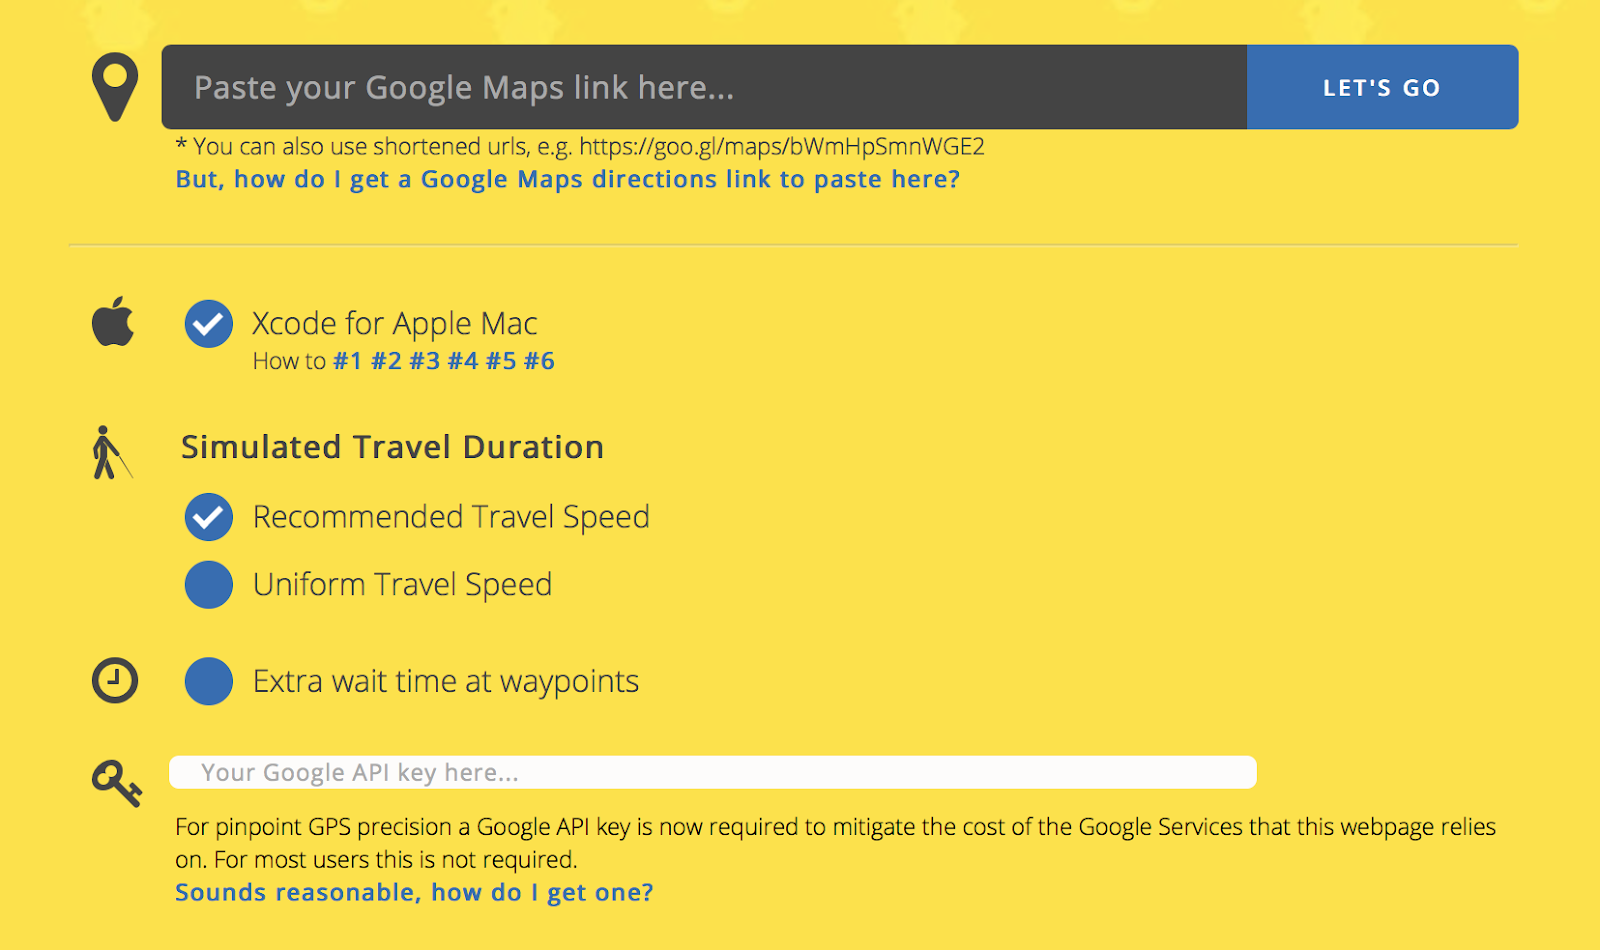 Come convertire un percorso di Google Maps in gpx